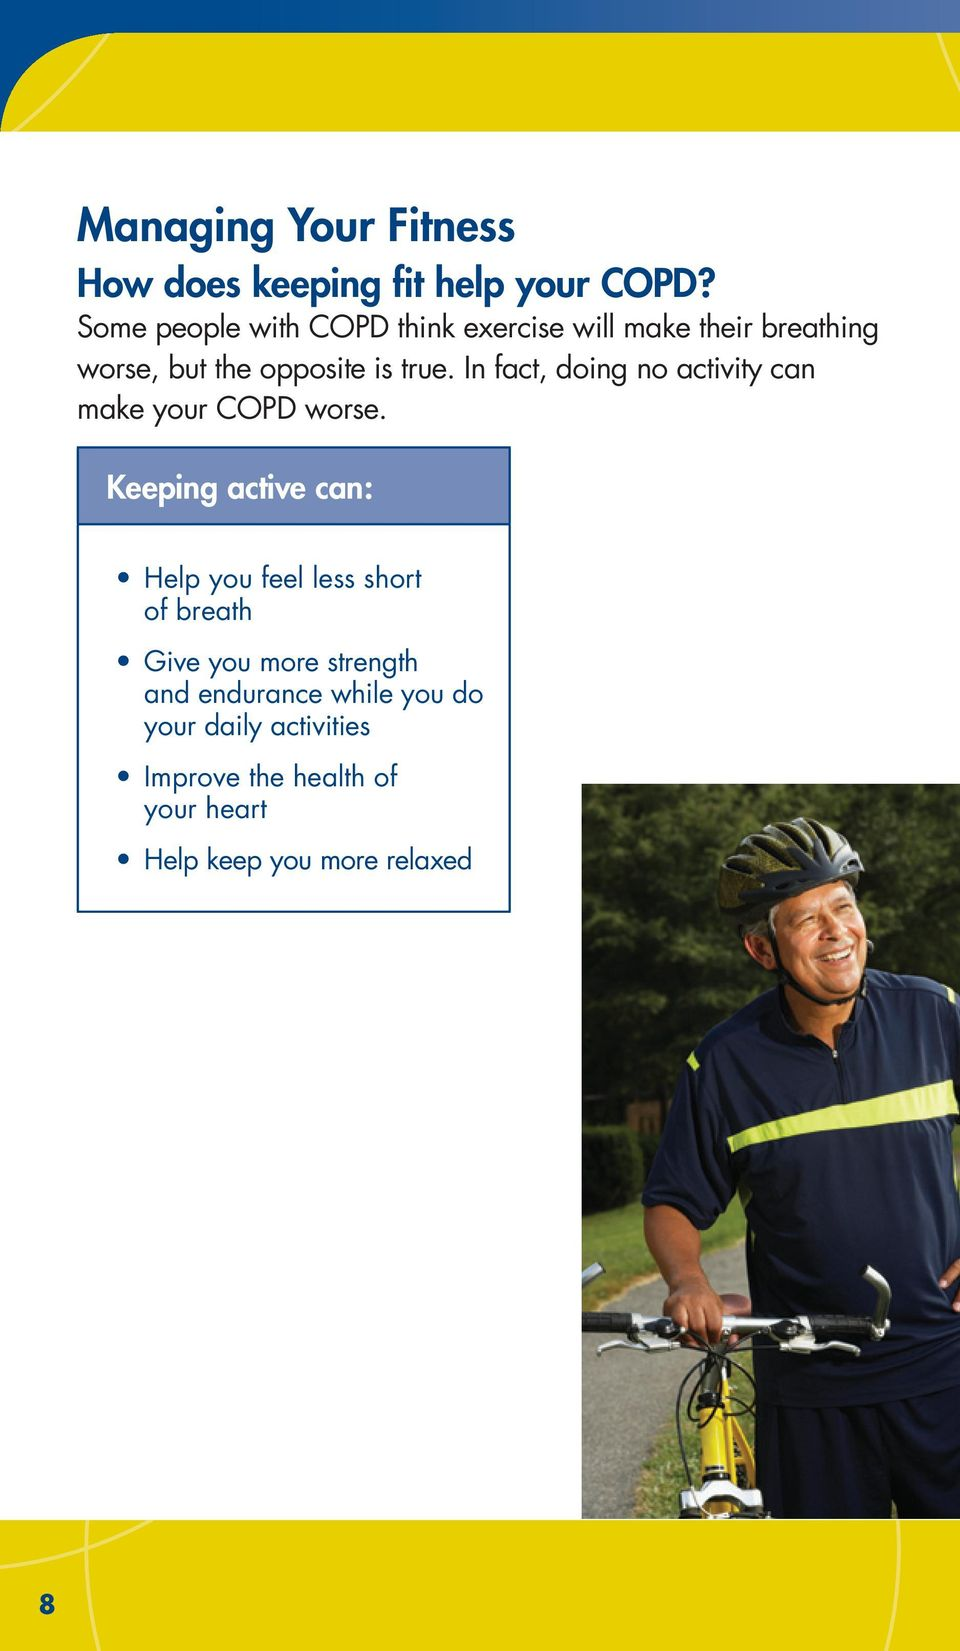 In fact, doing no activity can make your COPD worse.